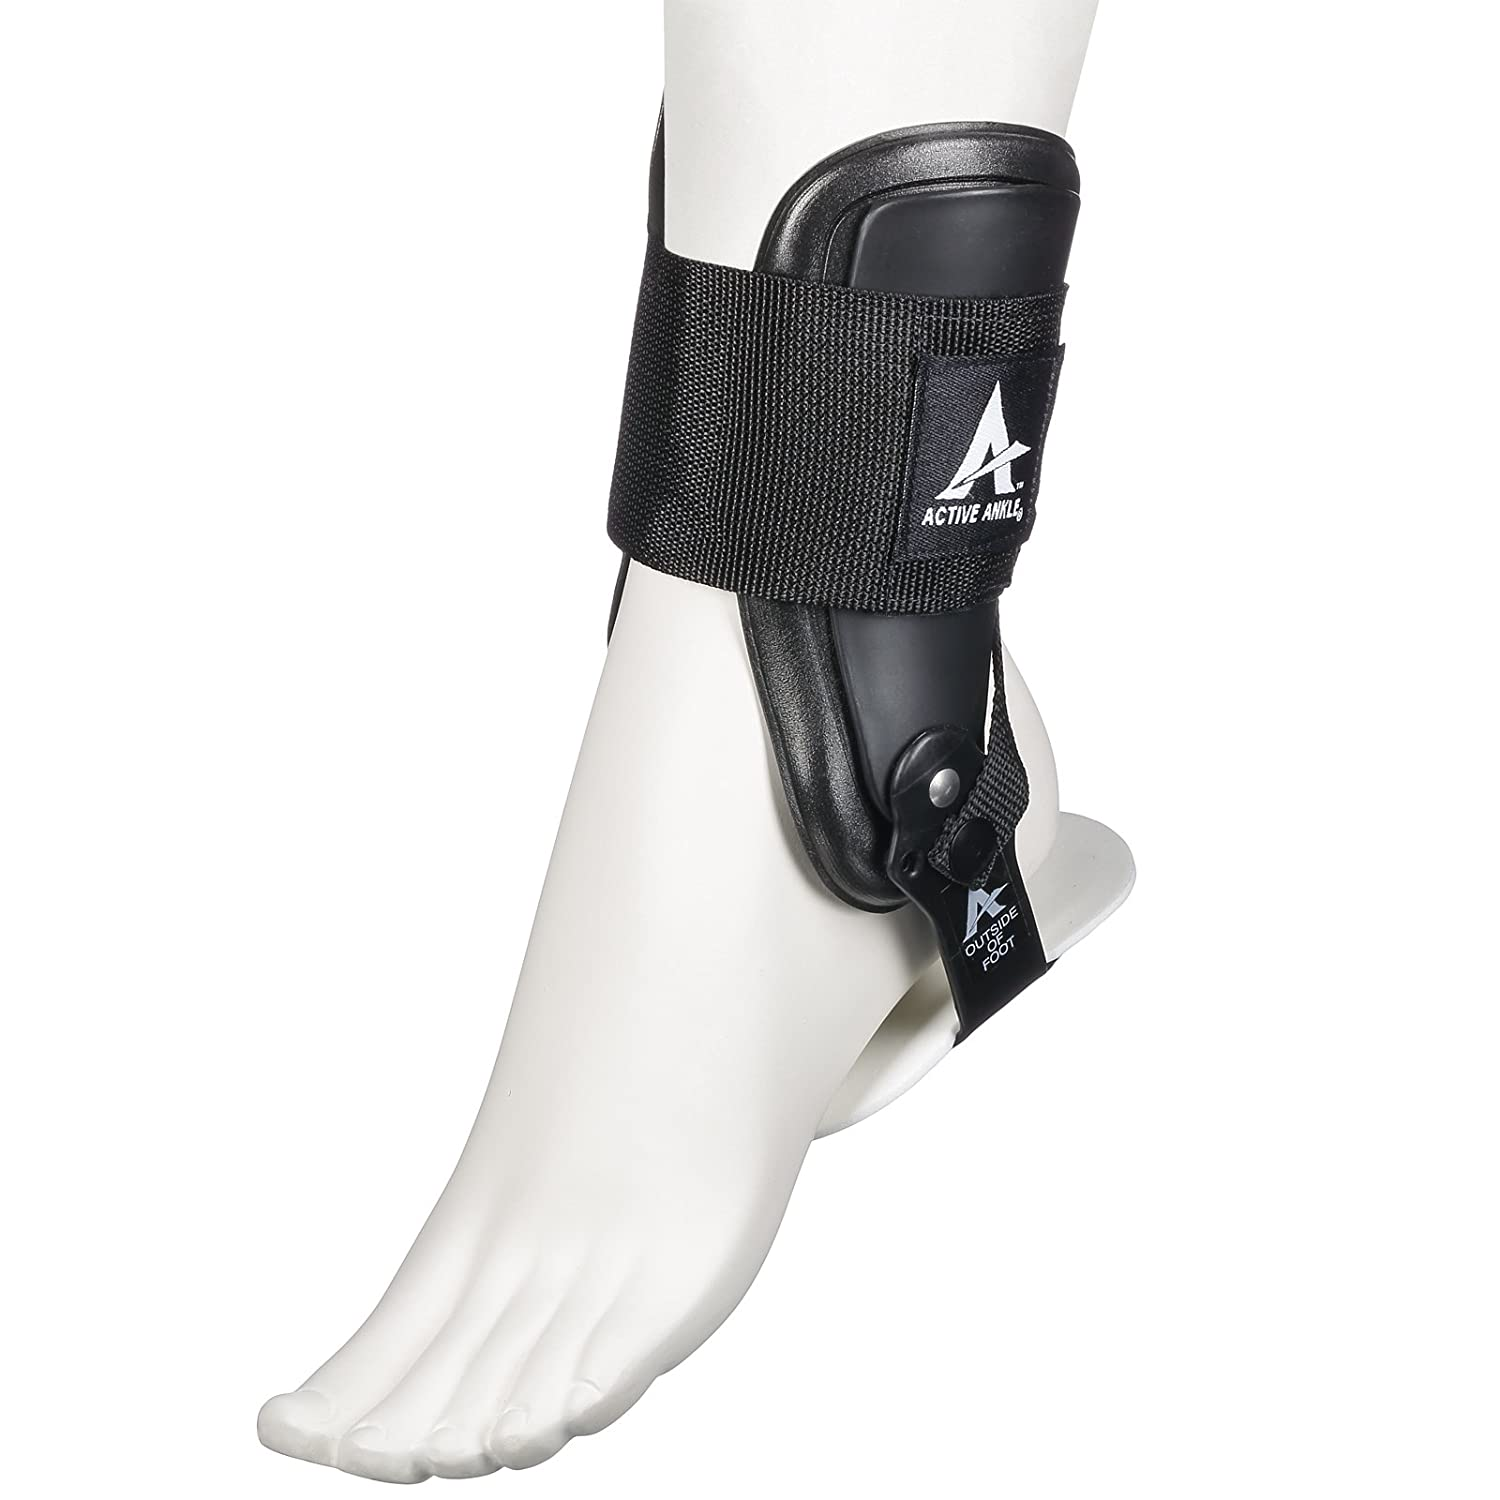 Ankle Brace, Stabilizer and Sprain Support